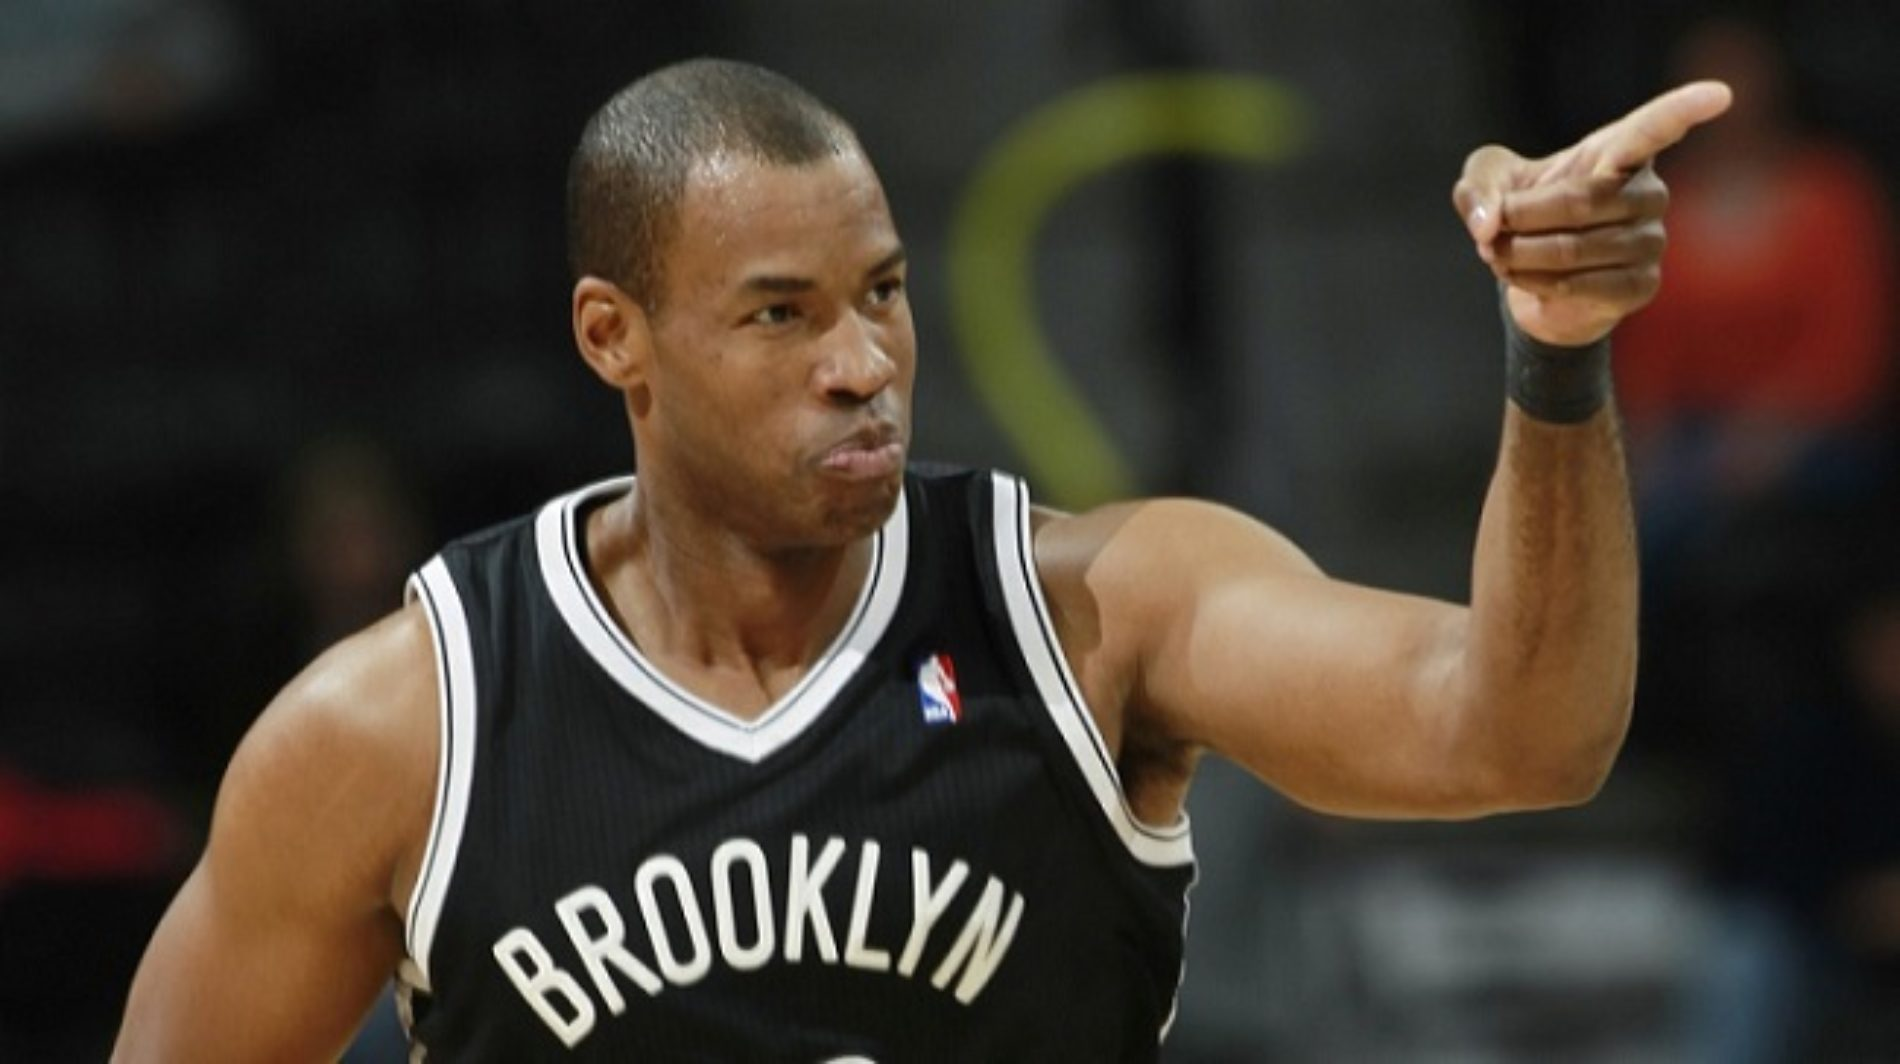 Jason Collins Plans To Retire, Says There Are Closeted Players In Every Sport